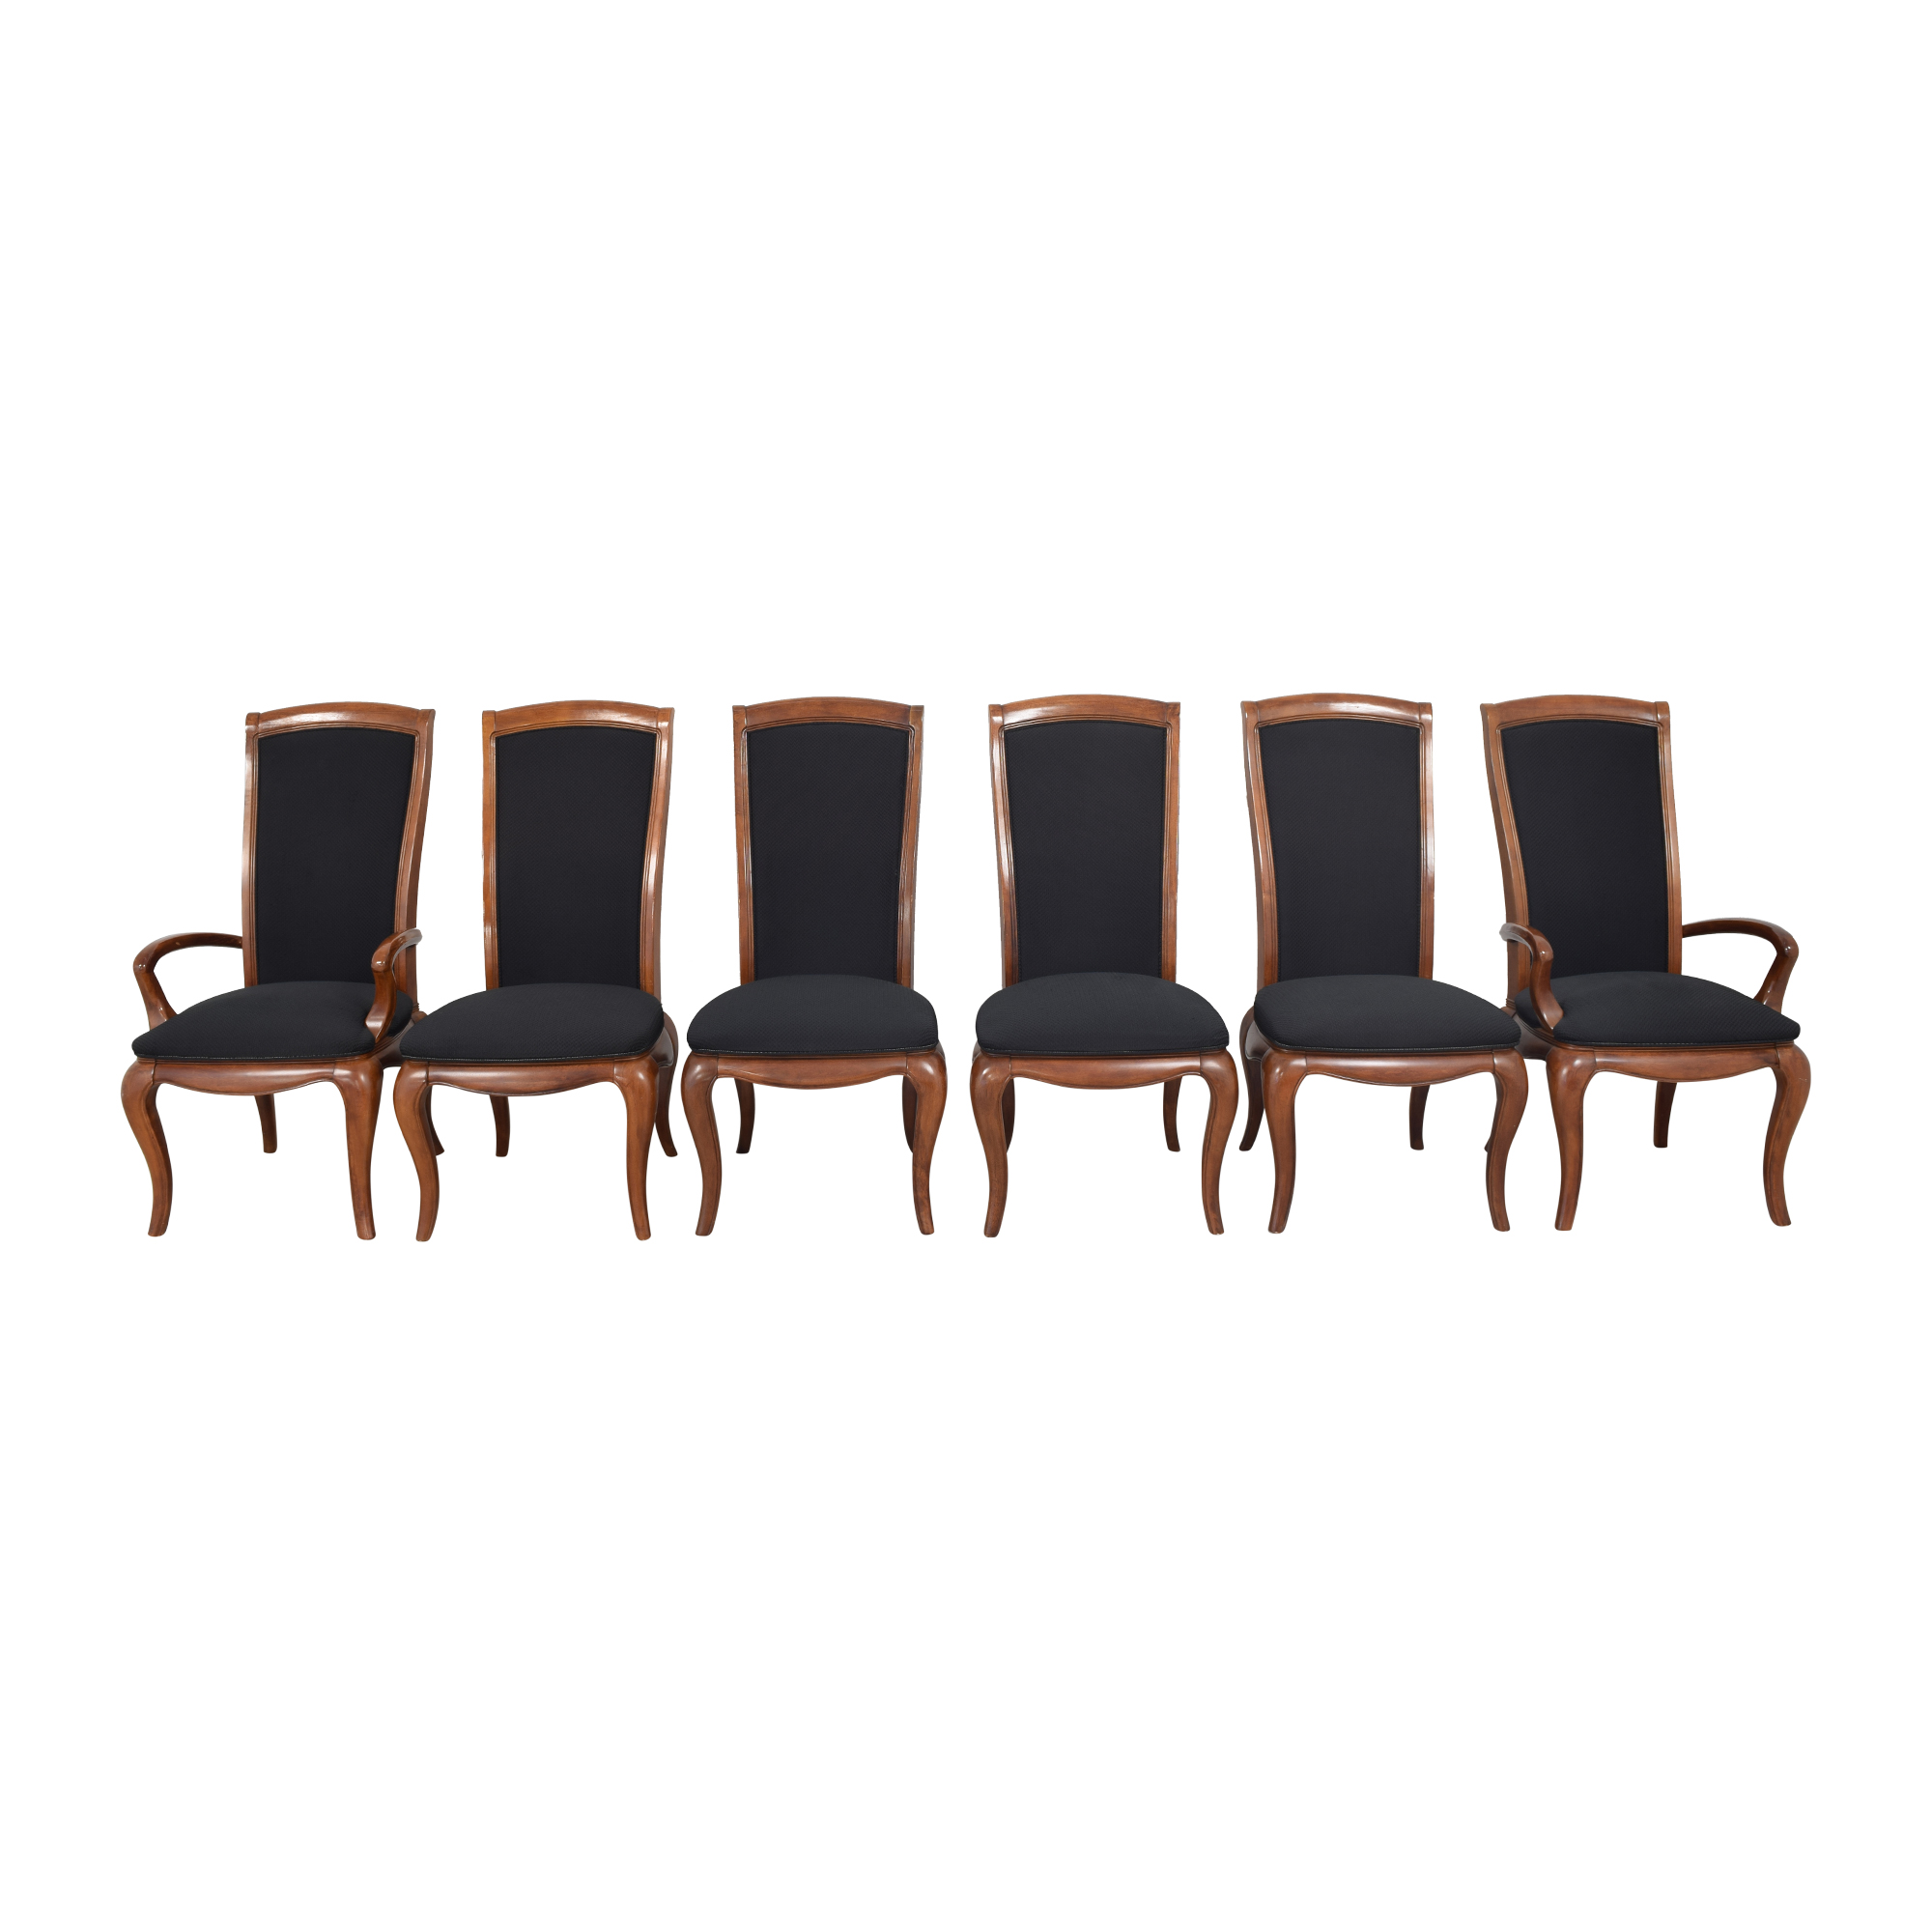 American Drew American Drew High Back Dining Chairs used